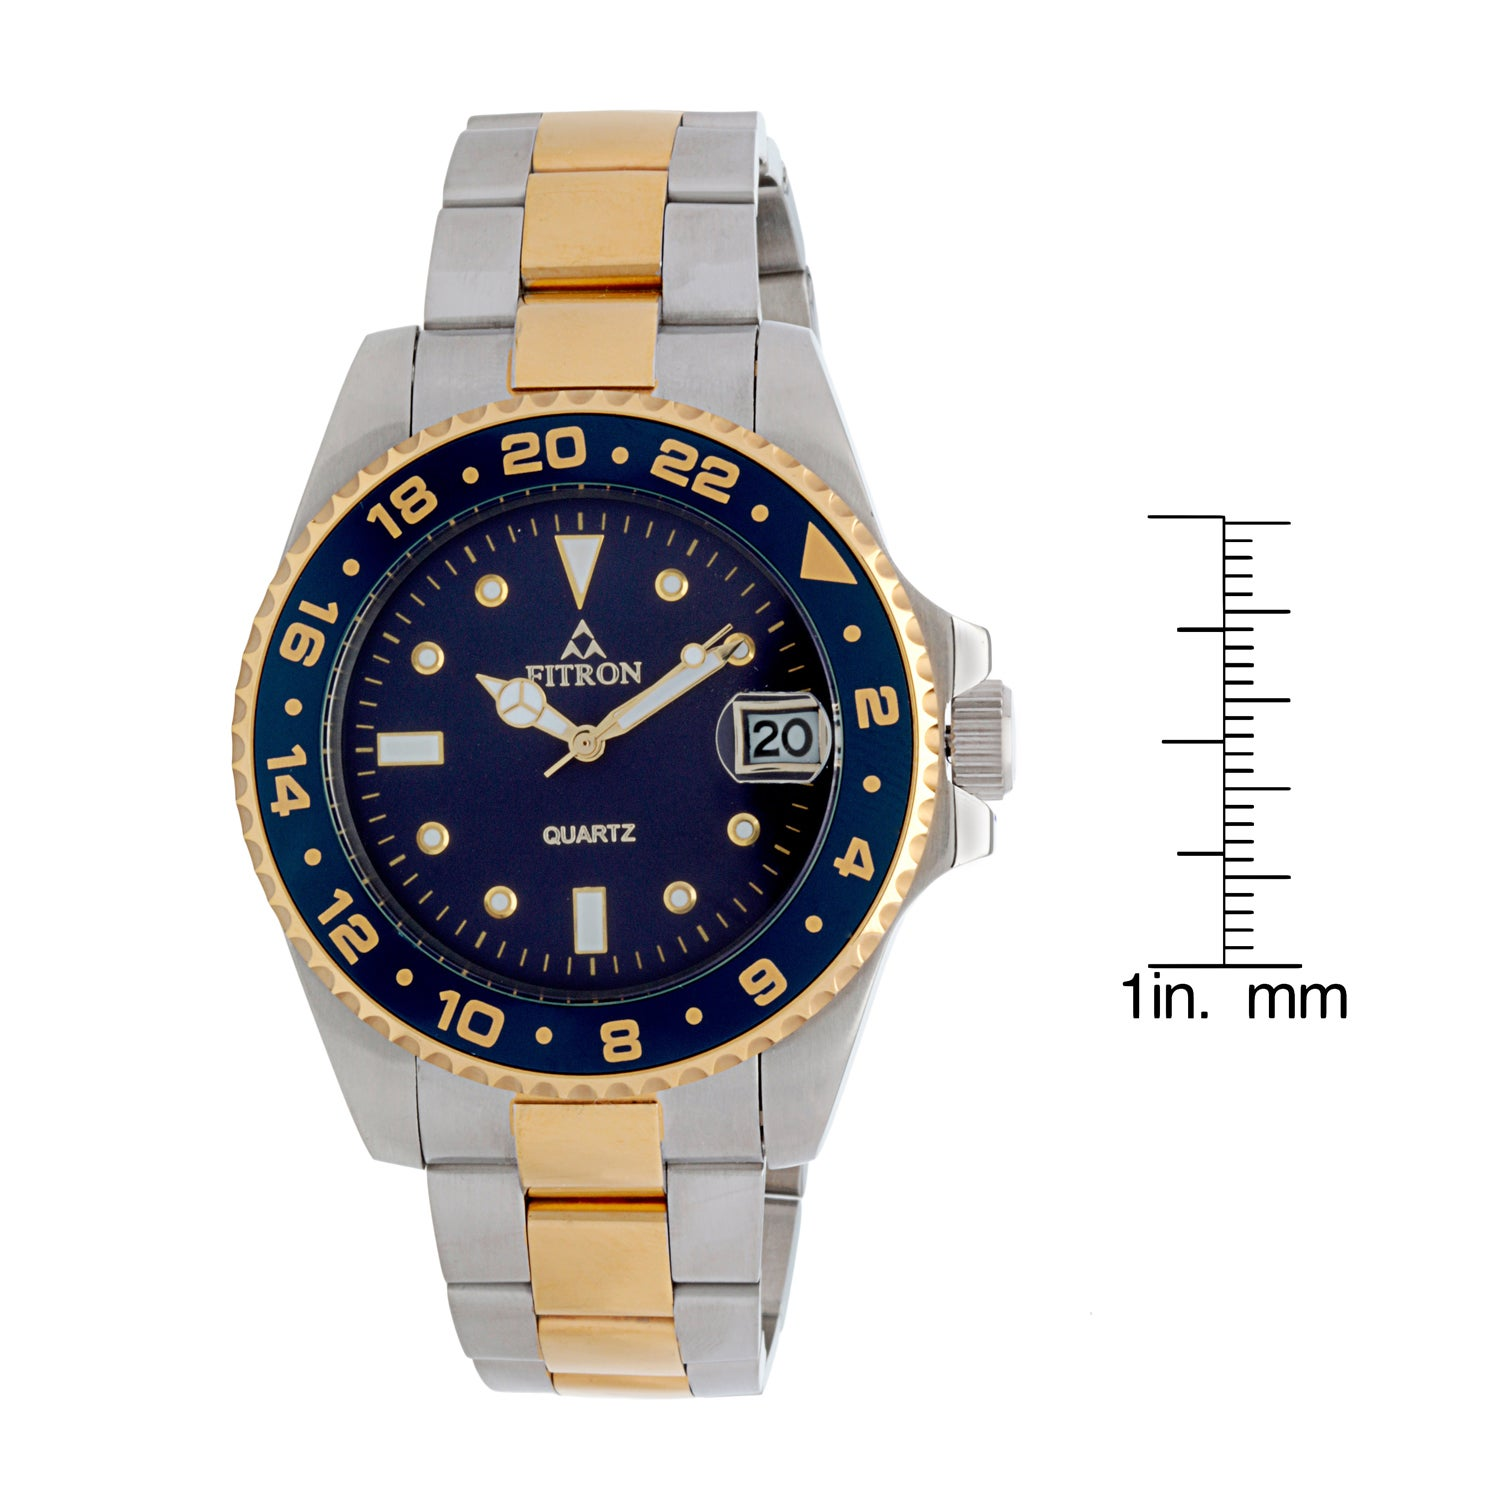 a0e608d85fe Shop Fitron Men s Stainless Steel Watch - Free Shipping Today ...